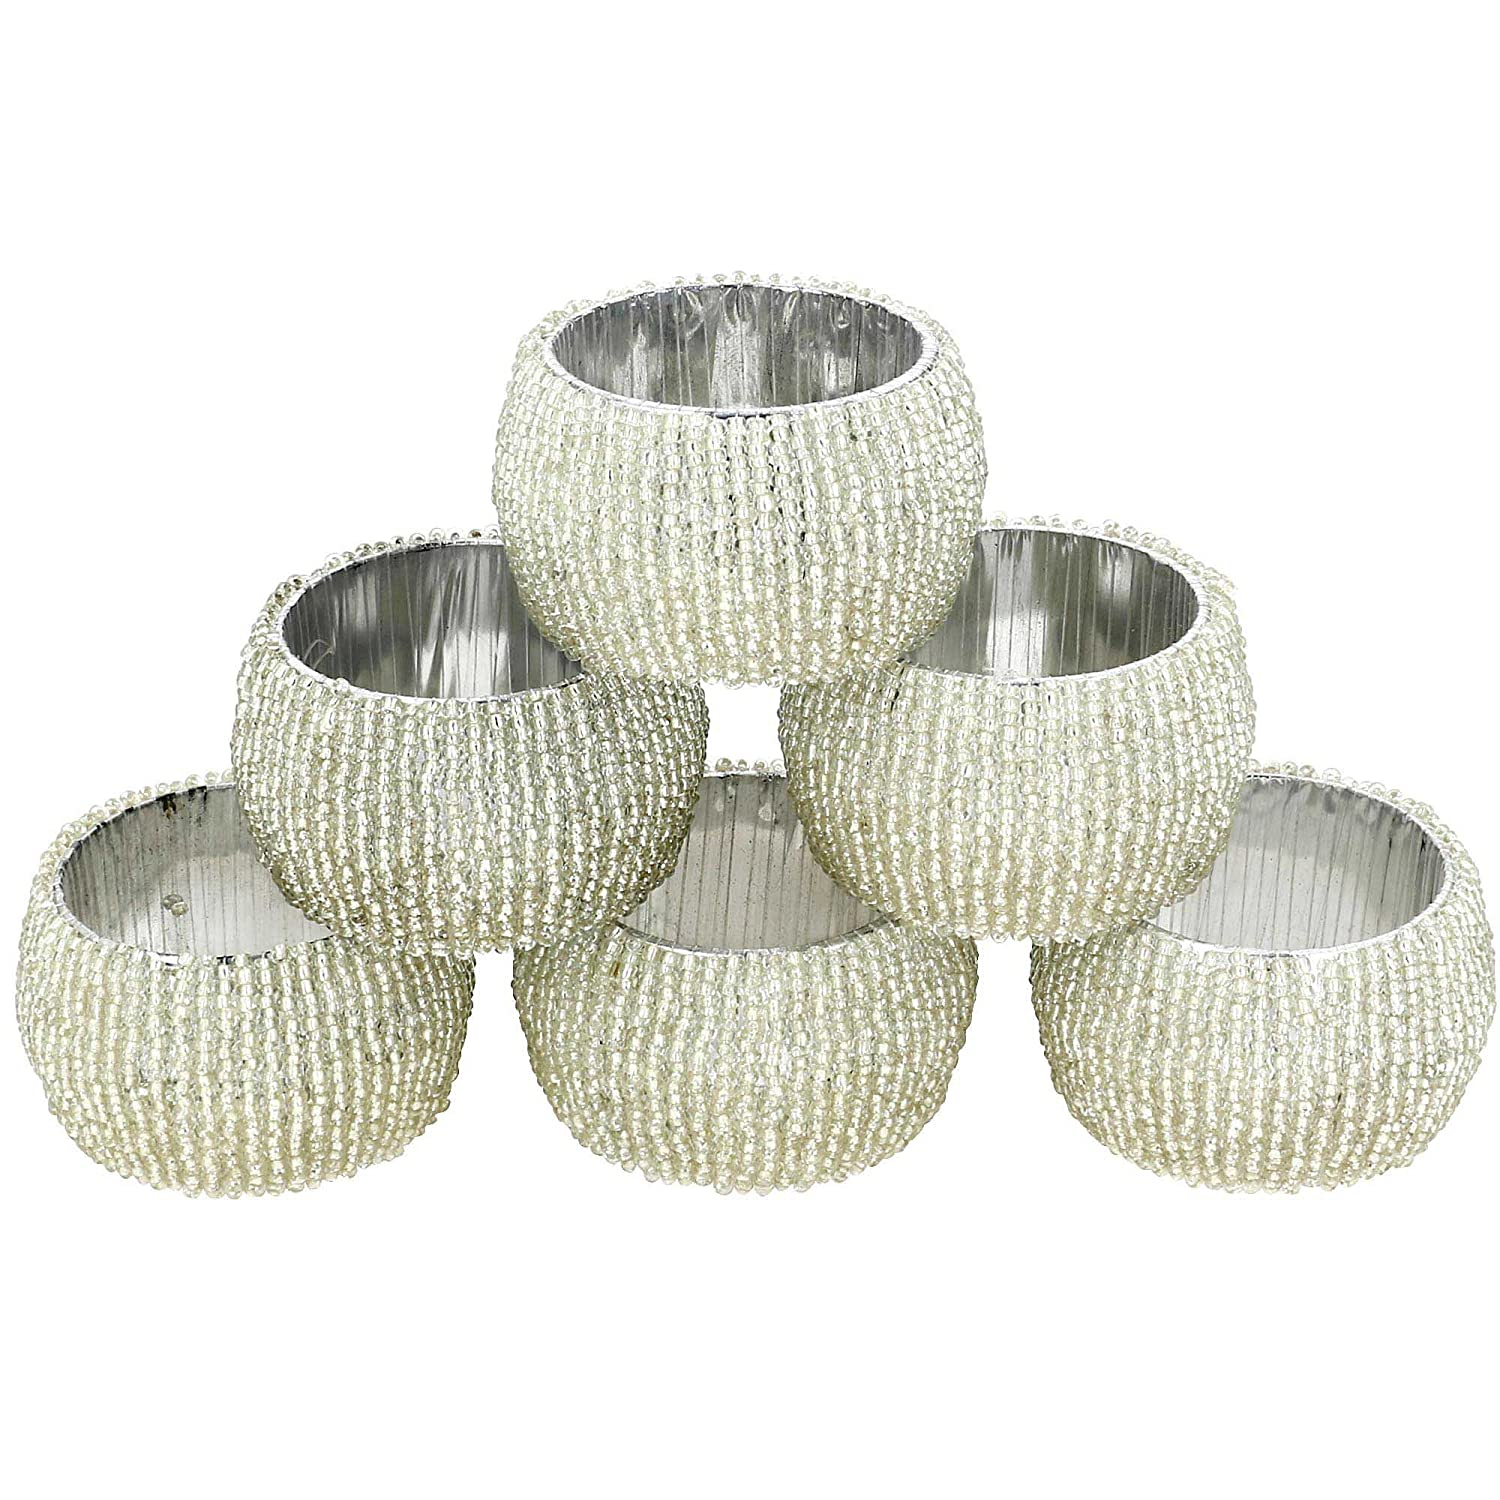 Beaded Napkin Rings Set of 6 Silver Decorations Christmas Ornaments ShalinCraft MN-NHS6S